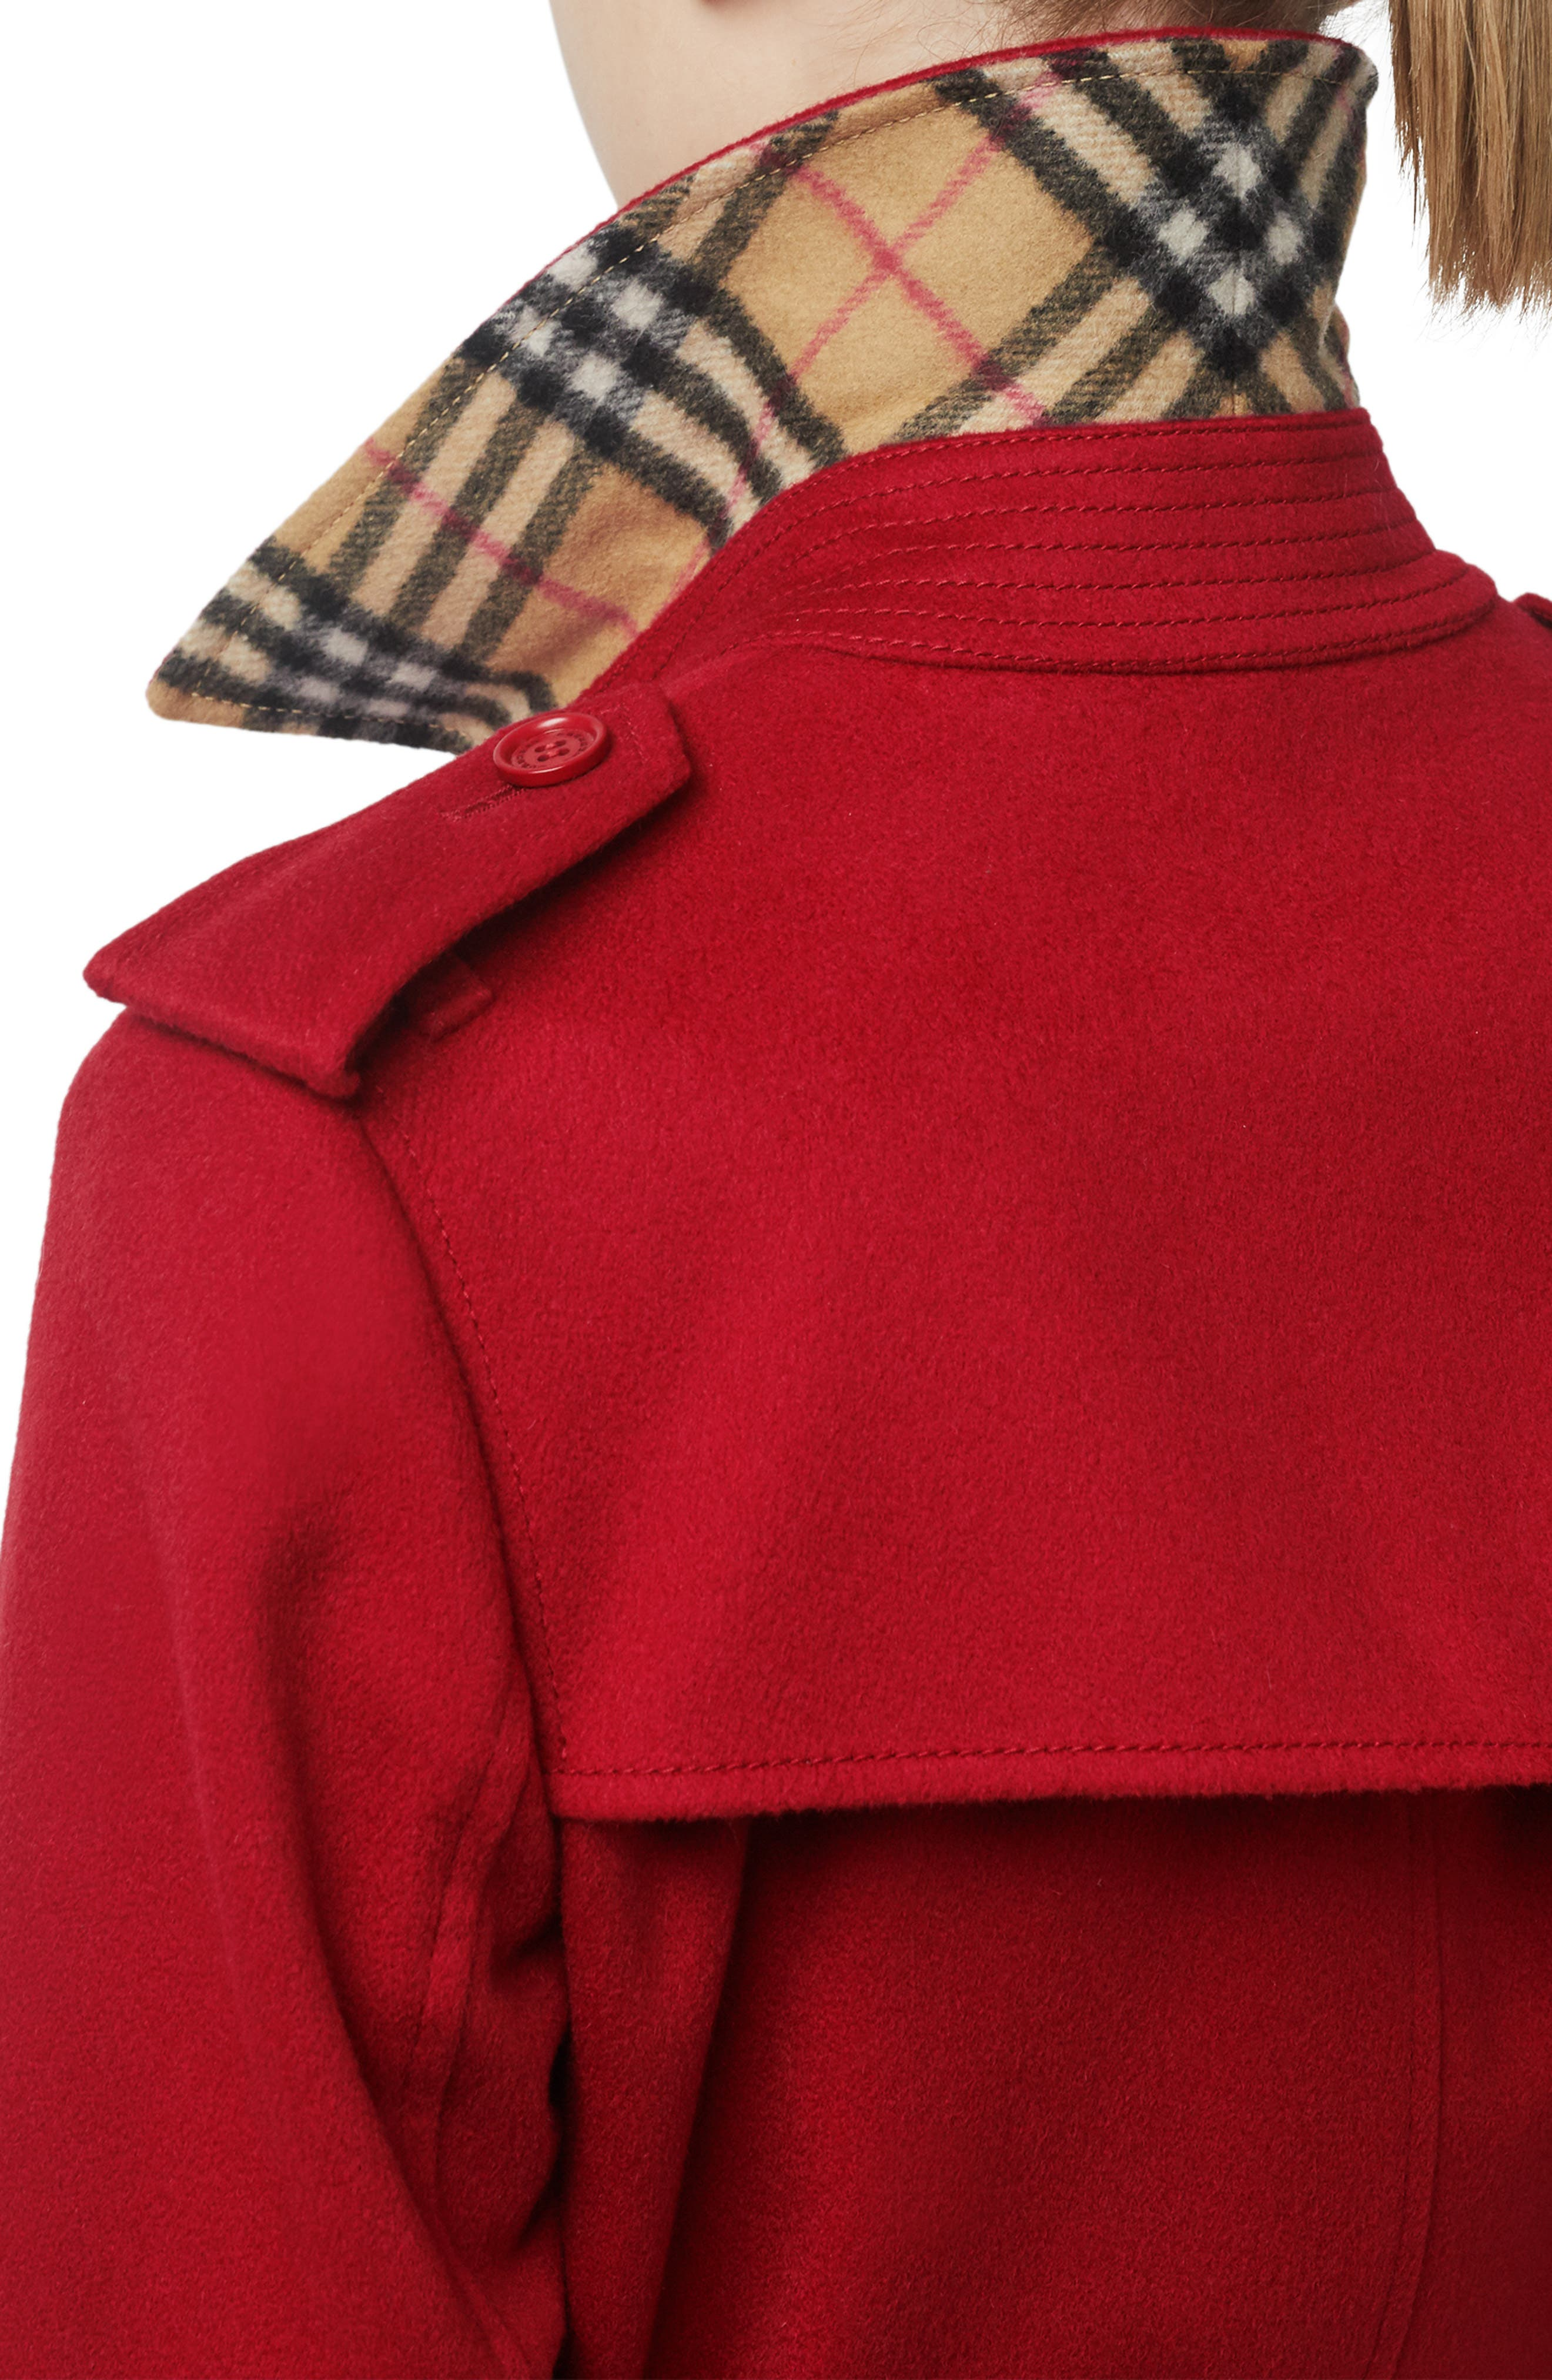 Kensington Cashmere Trench Coat,                             Alternate thumbnail 4, color,                             PARADE RED